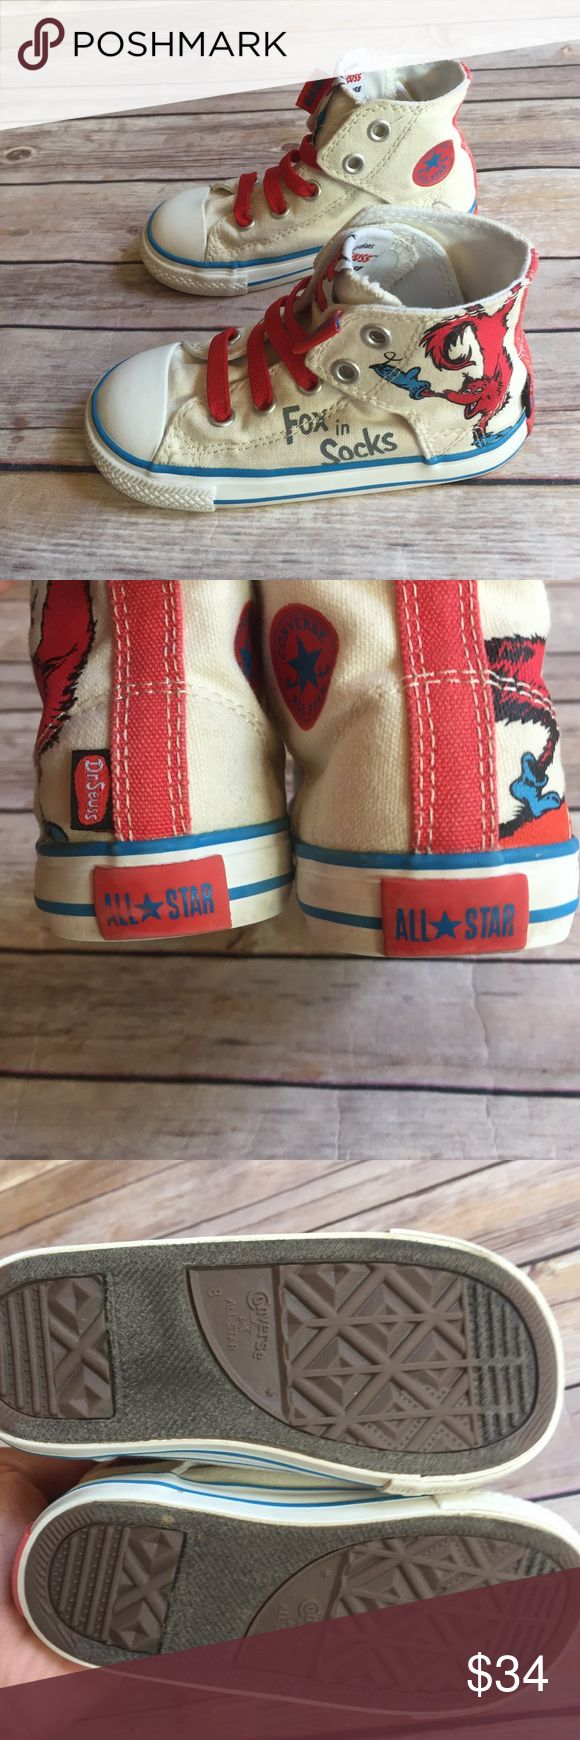 """Fox in Socks converse Size 8 toddler simple slip """"Fox in Socks"""" converse in very good used condition.  Hard to find.  Velcro closure and elastic laces.  Very minor wear on back logos. Converse Shoes"""